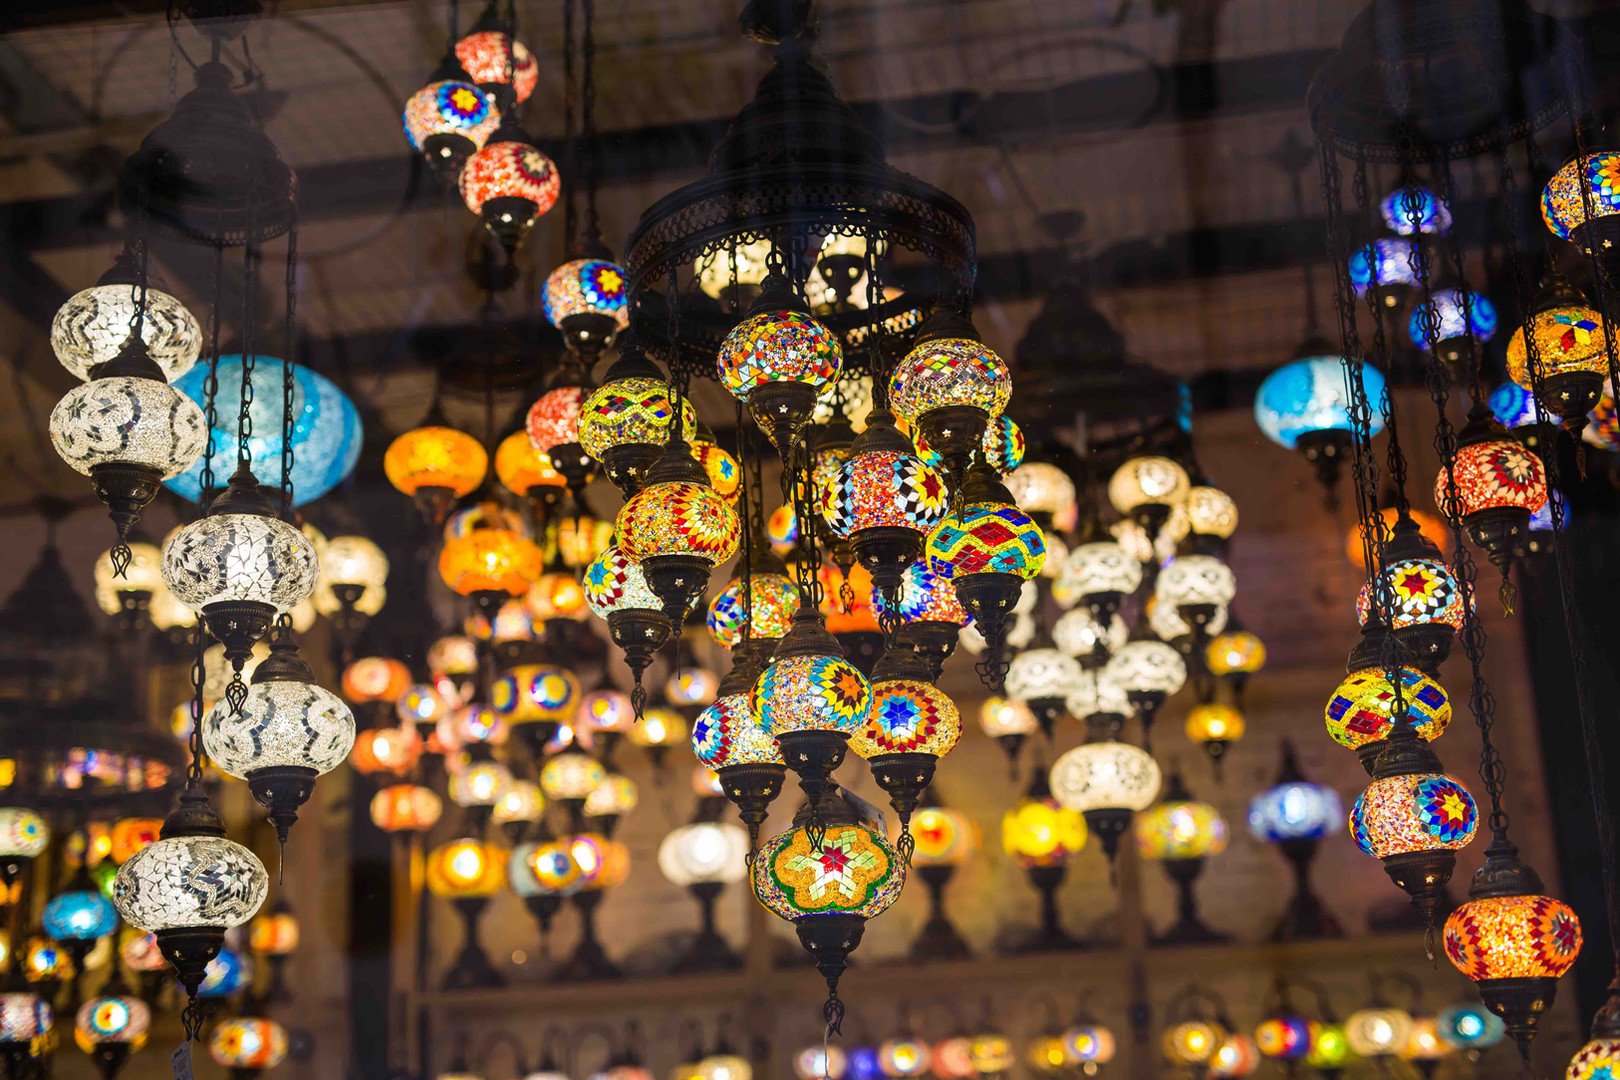 bigstock-Colourful-Turkish-Mosaic-Lamps-